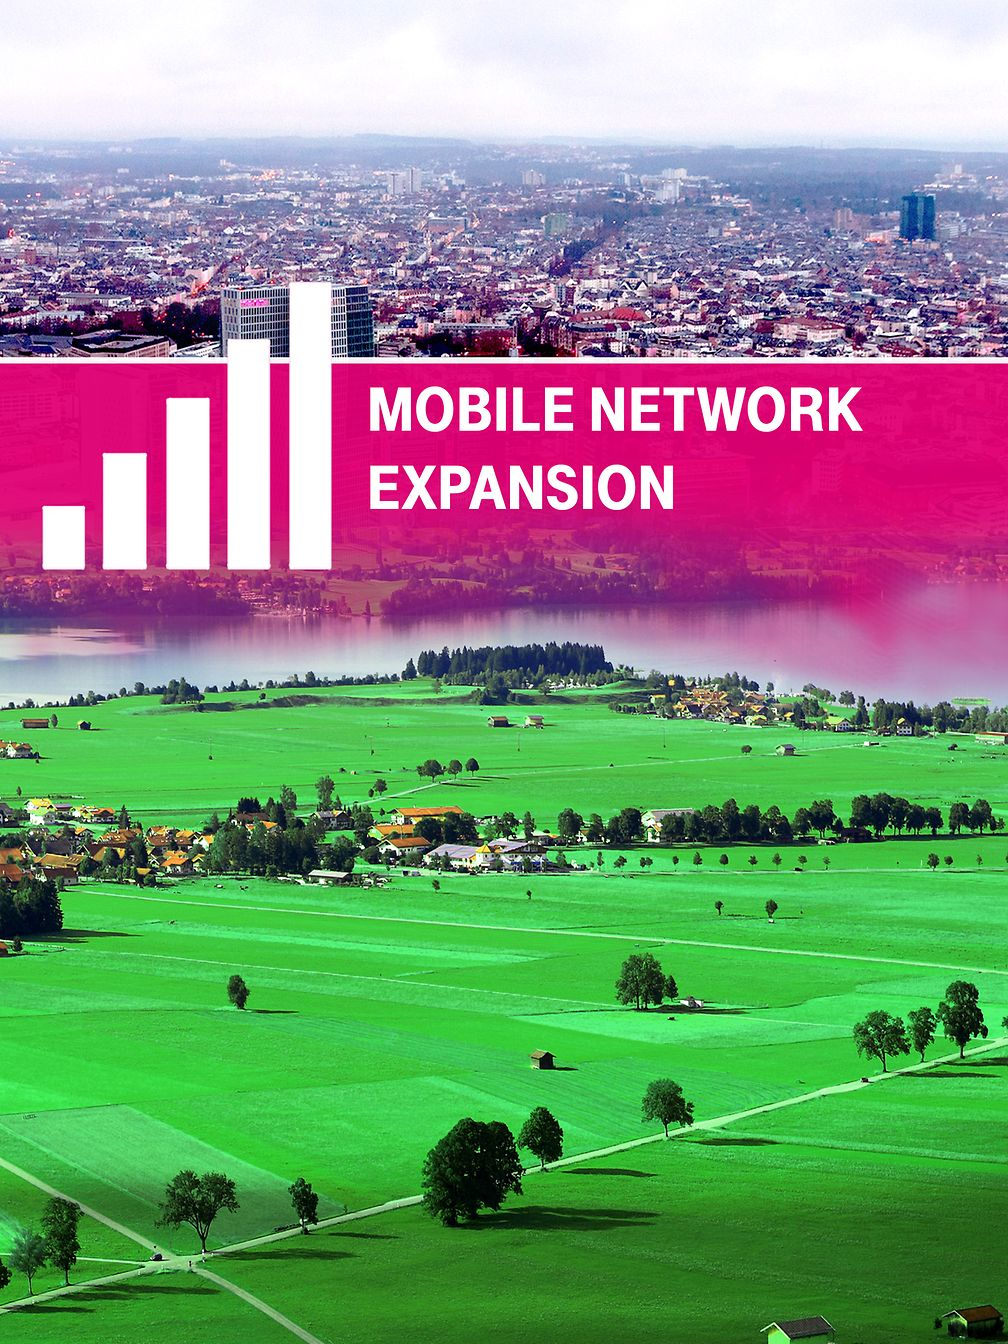 New mobile base stations